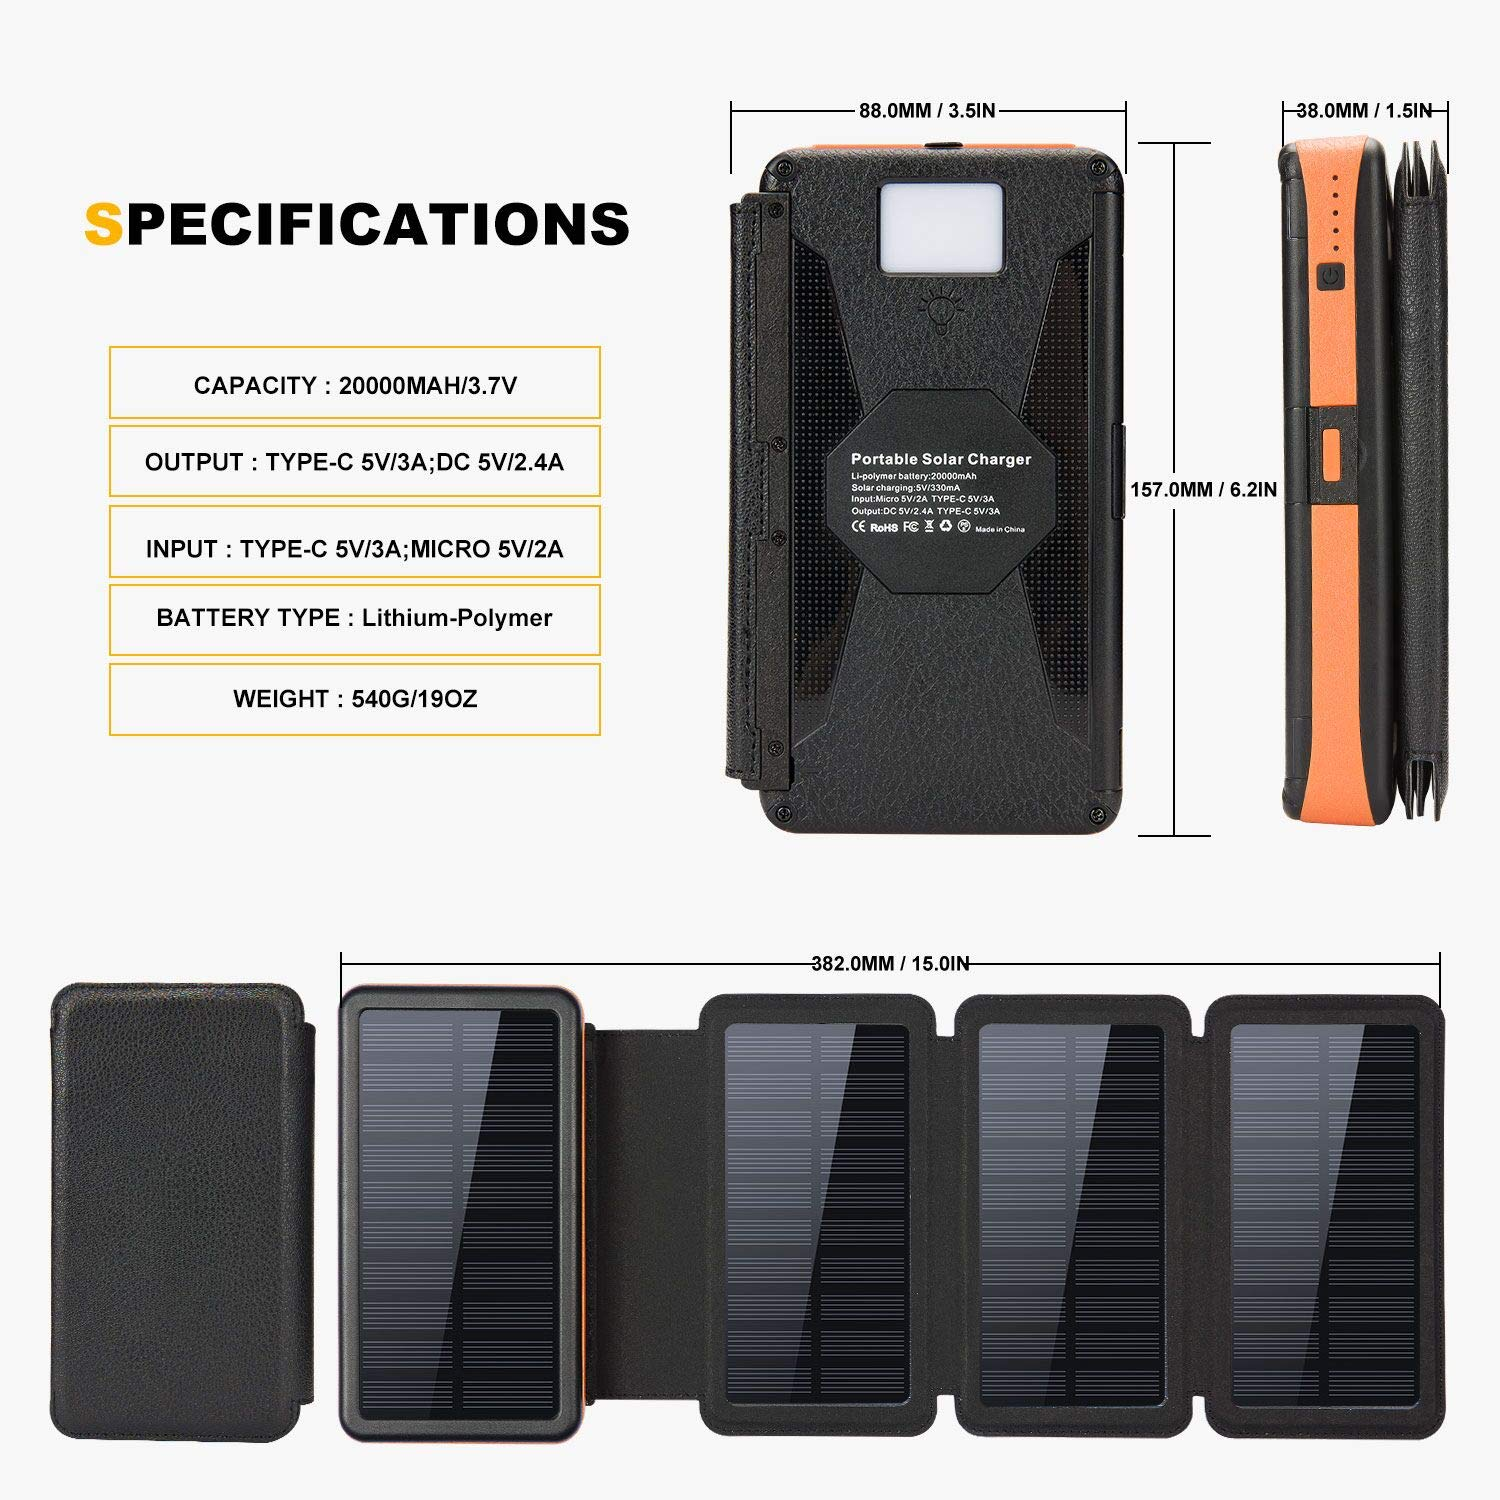 20000mAh Solar Charger with Dual 5V/2.4A Outputs and Quick Charge Type C 5V/3A Output/Input,Solar Power Bank with 4 Waterproof Foldable & Removable External Battery Pack,Works for Smartphone and More